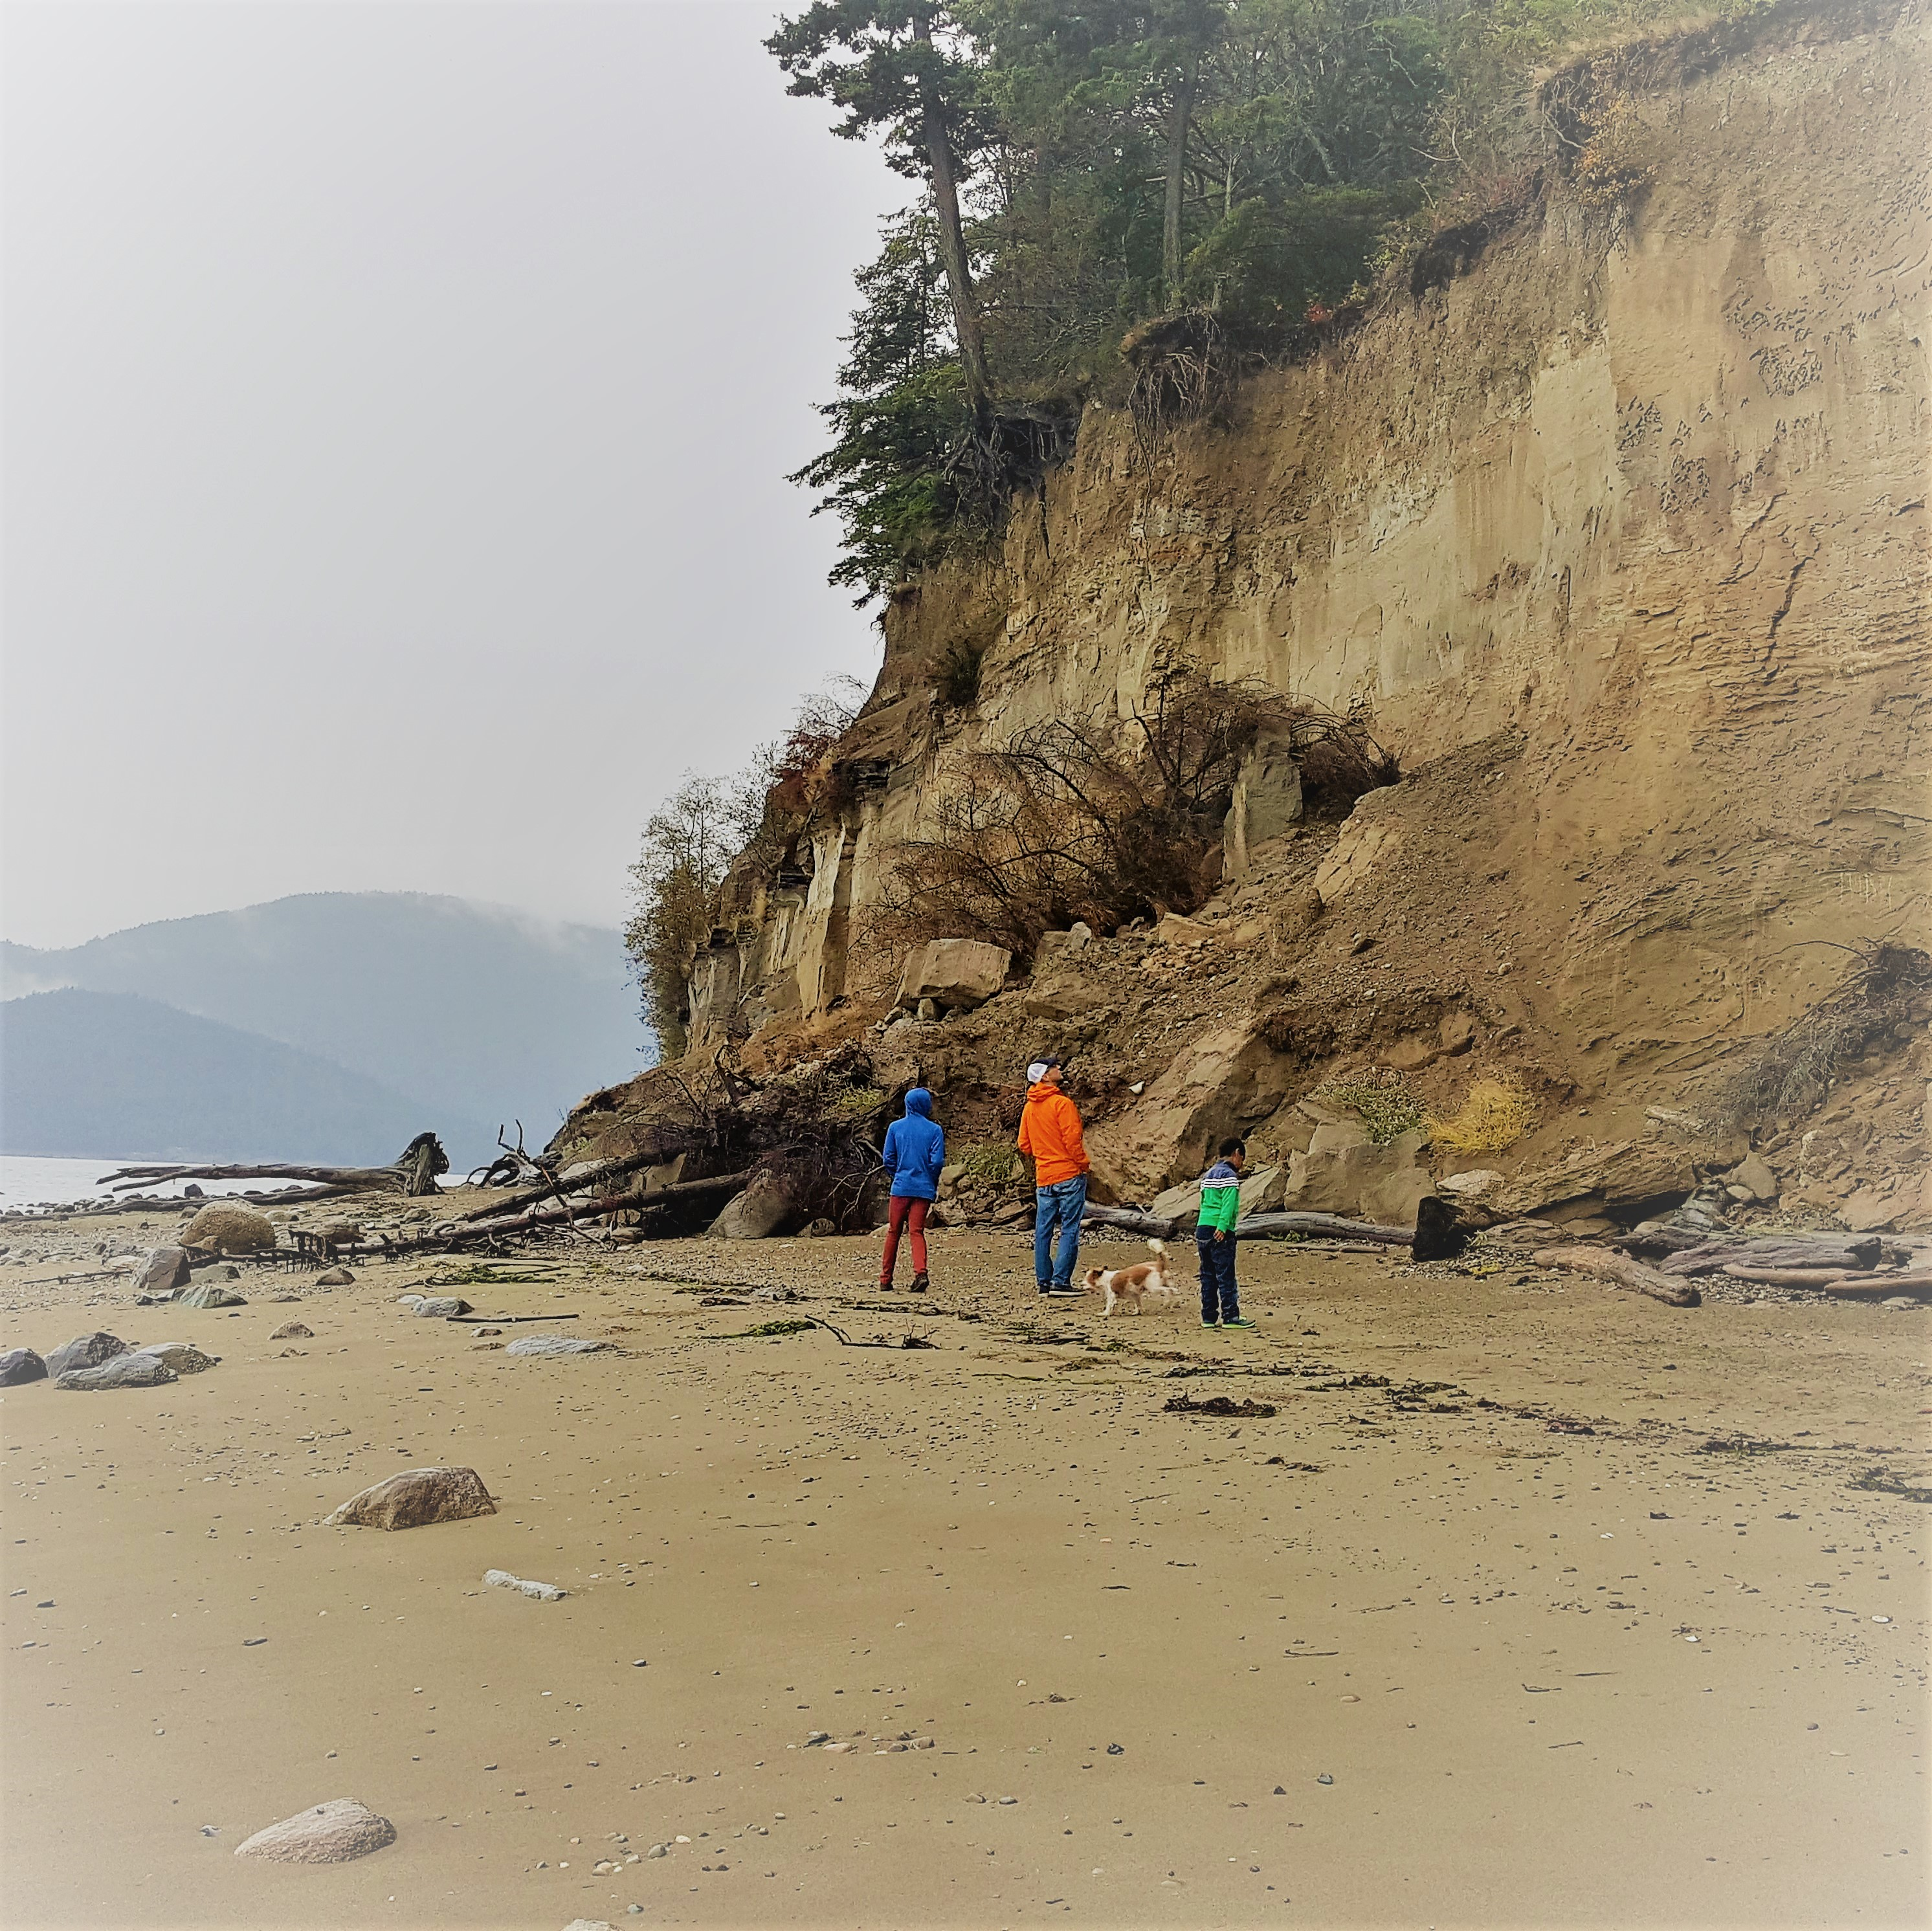 Kelly's Point is a popular location on Guemes Island to walk the beach. Photograph credit: Skagit Land Trust staff.